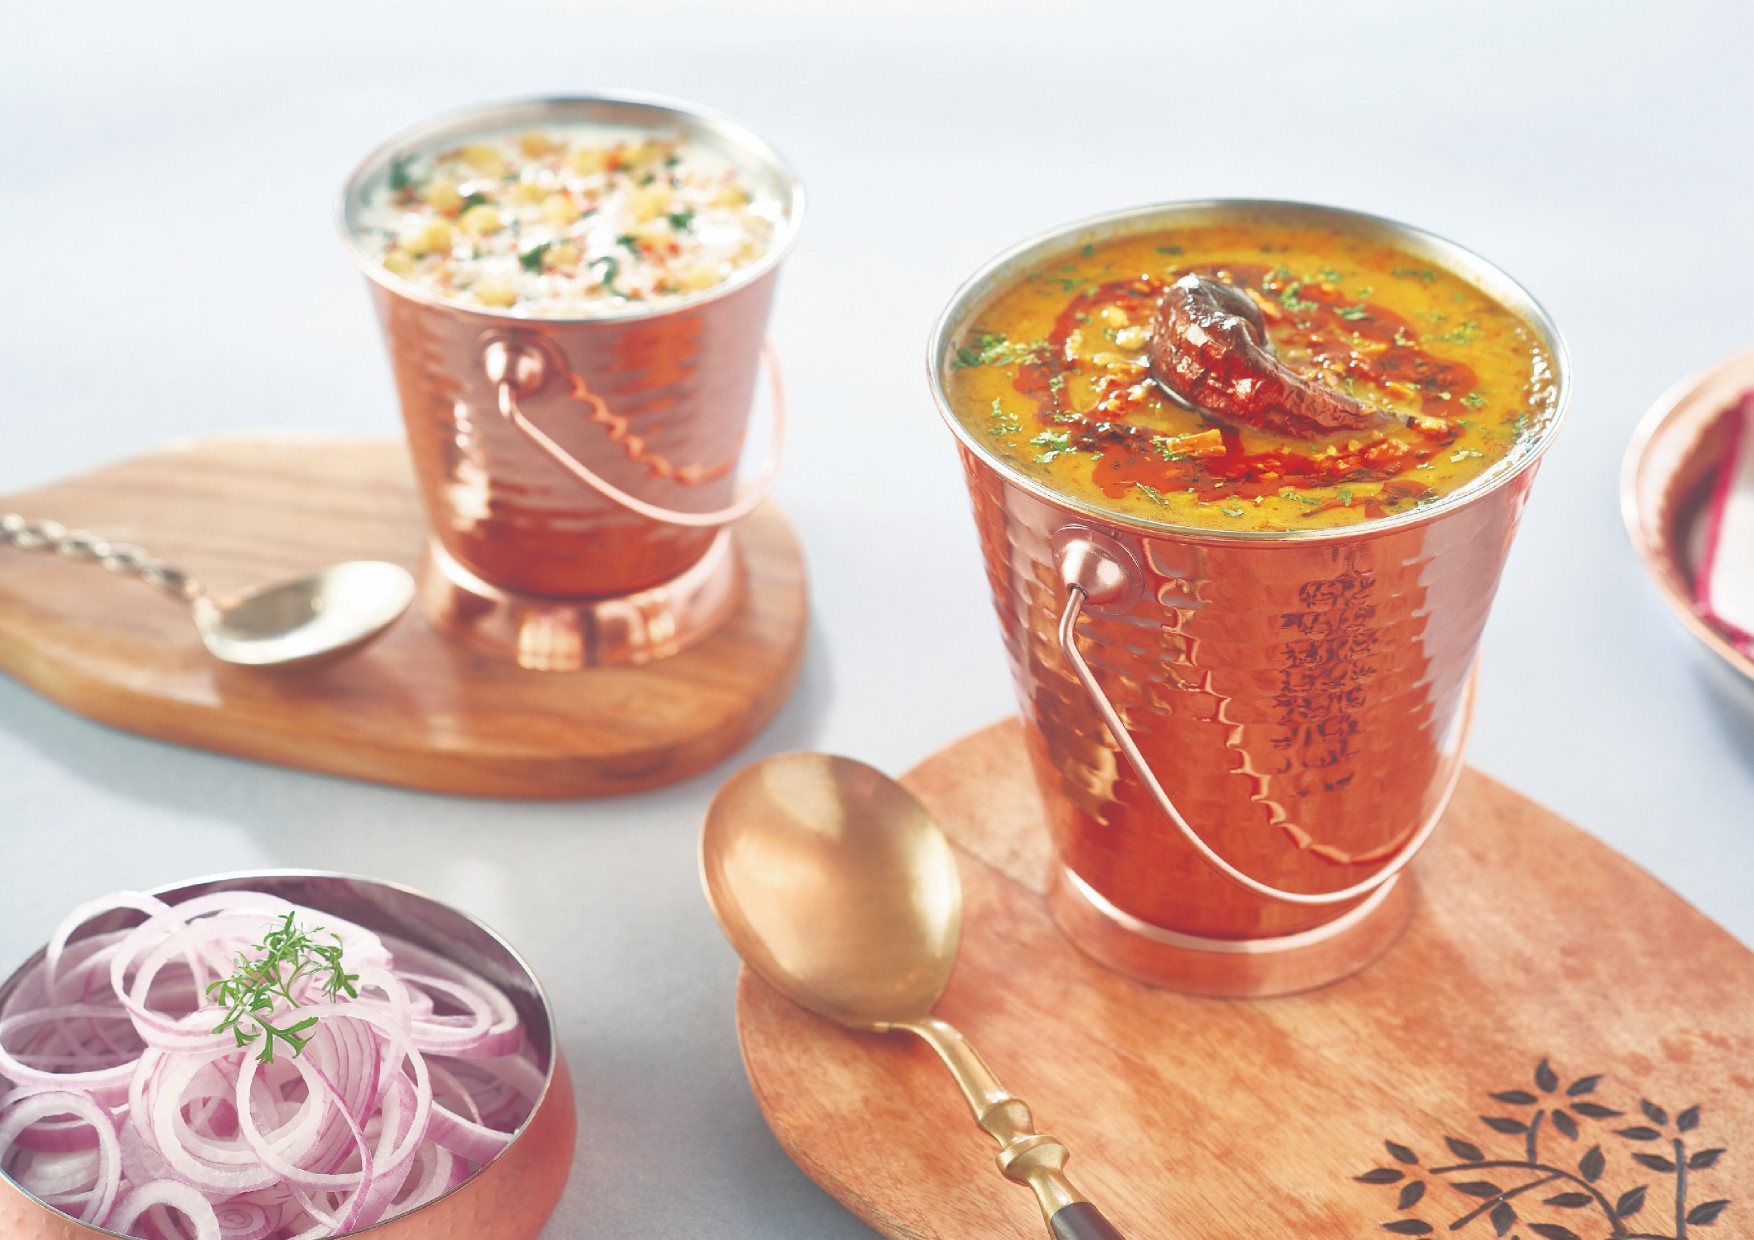 Copper Curry Bucket Set Stainless steel Serving Sets in Copper Colour by Songbird